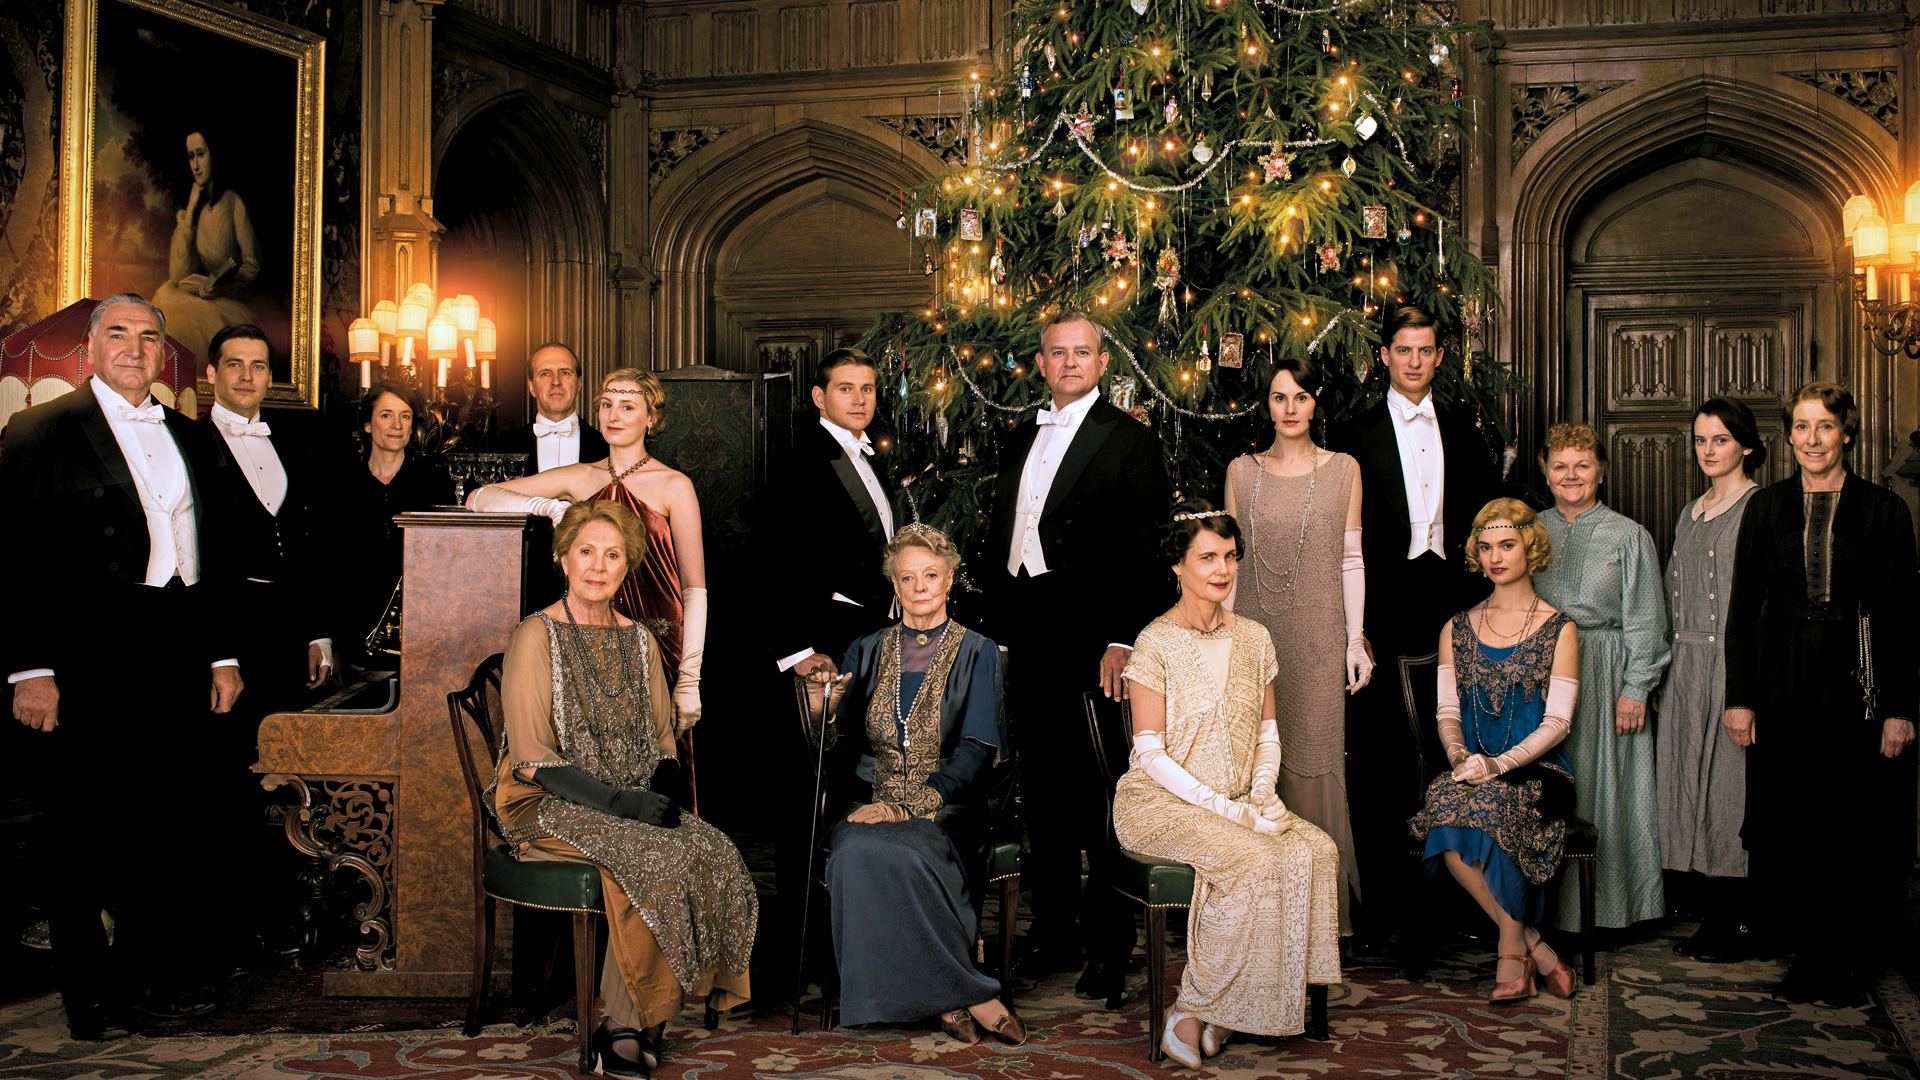 downton abbey le film tir de la s rie a une date de sortie. Black Bedroom Furniture Sets. Home Design Ideas